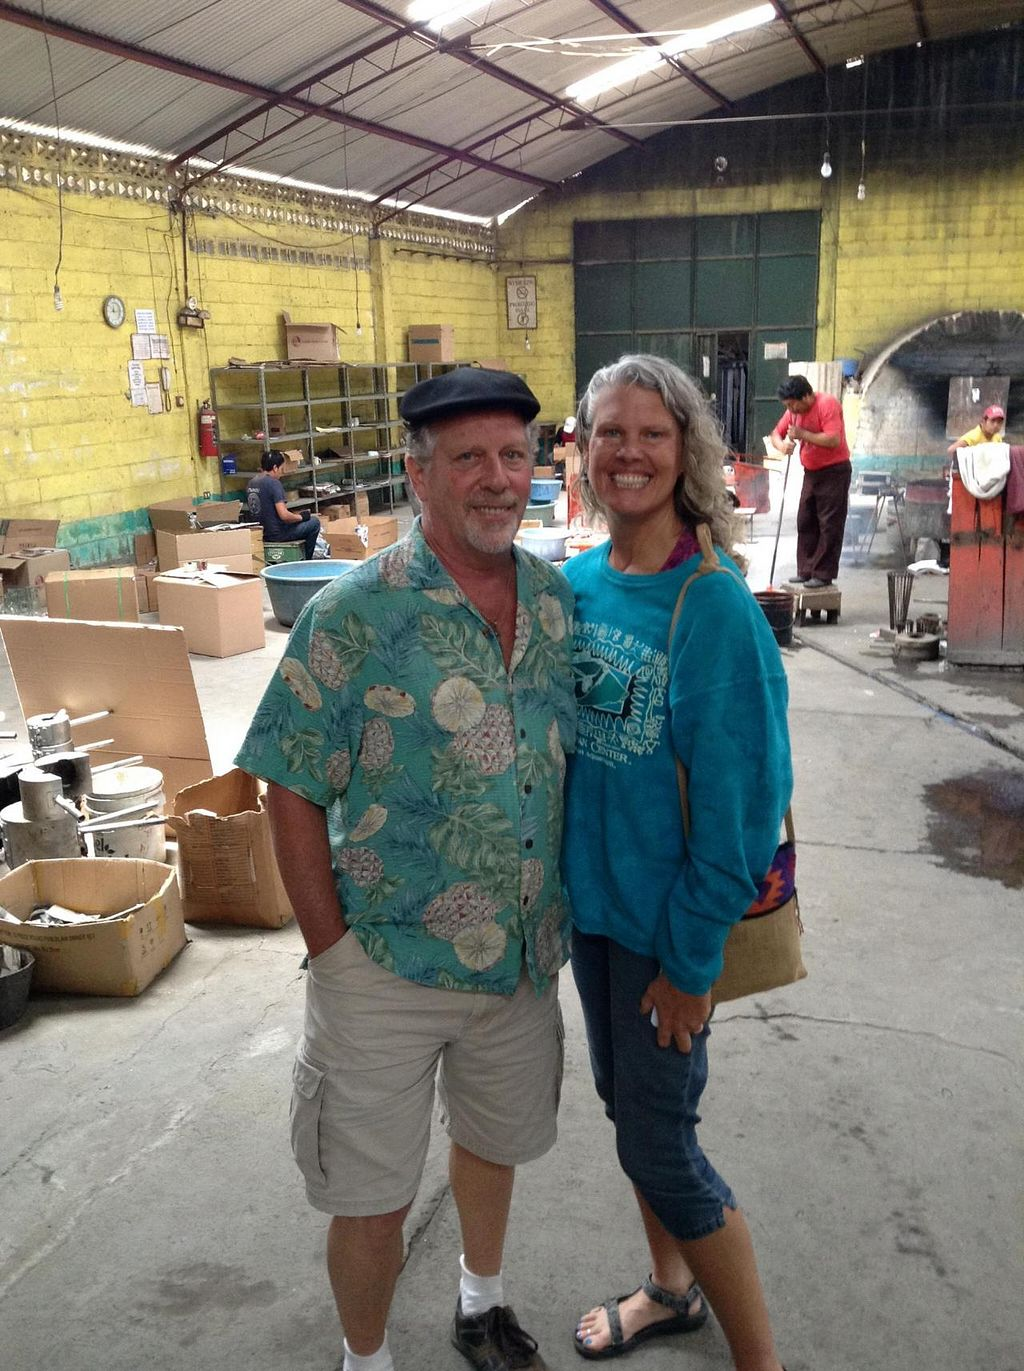 """Photo of Lake Villa Guatemala Vegan Retreats  by <a href=""""/members/profile/DouglasHaynes"""">DouglasHaynes</a> <br/>Traci and Mark at the glass factory <br/> April 16, 2014  - <a href='/contact/abuse/image/28451/67740'>Report</a>"""